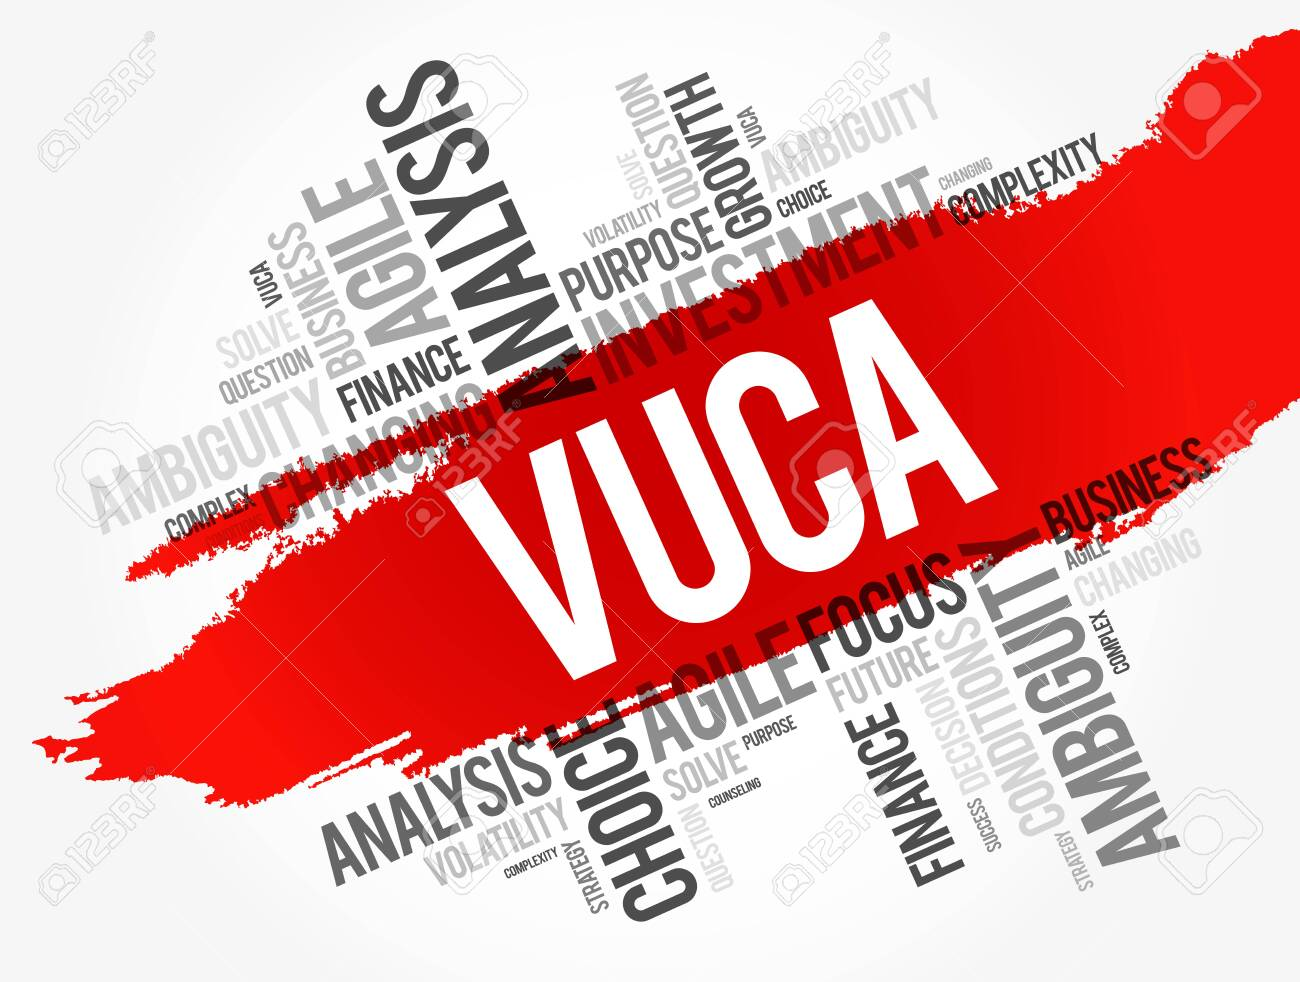 VUCA - Volatility, Uncertainty, Complexity, Ambiguity acronym word cloud, business concept background - 125622197